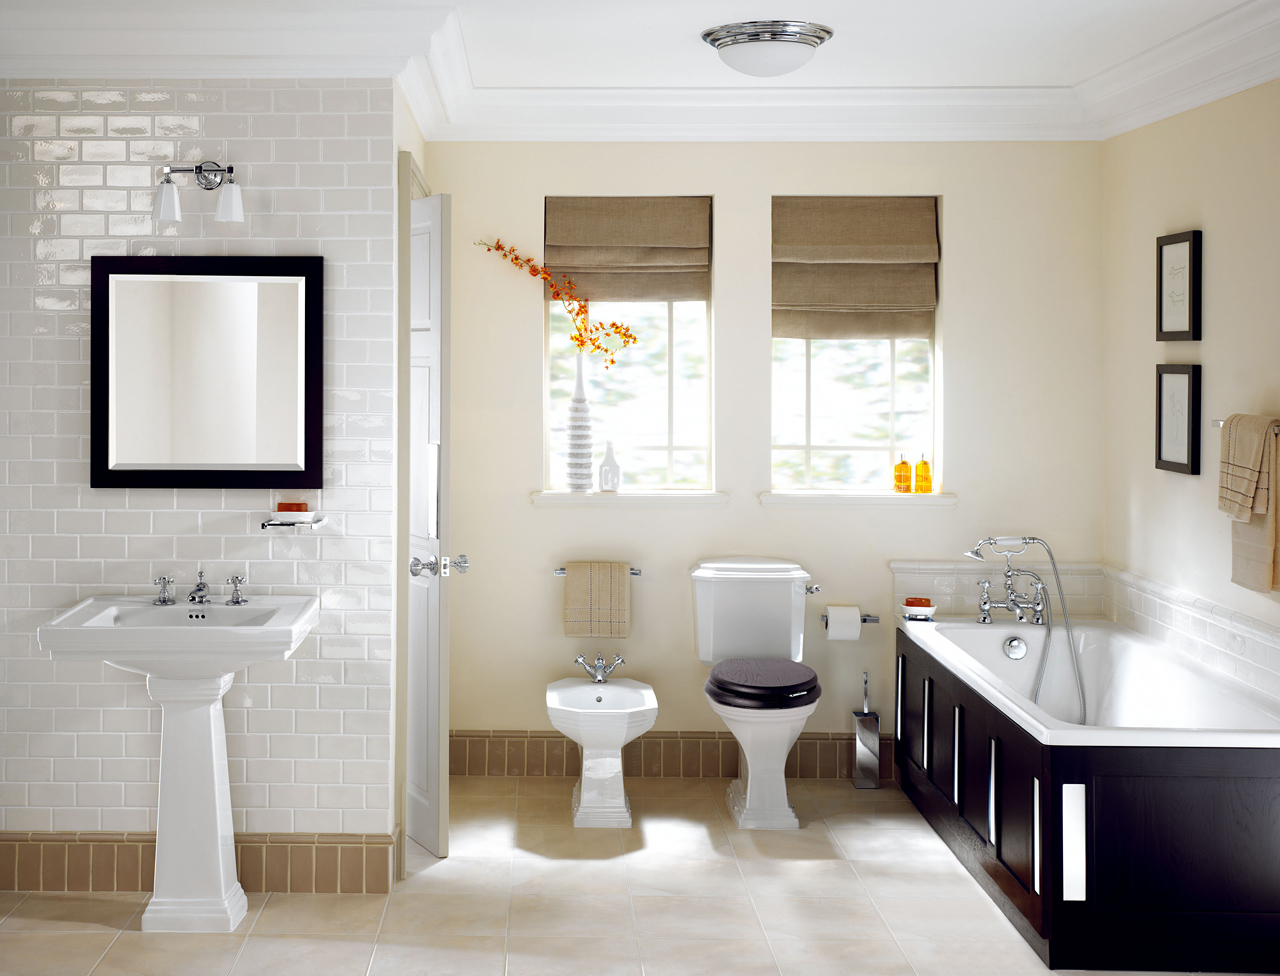 Classic Bathrooms: Imperial Bathrooms - Astoria-Deco-Main_retouch